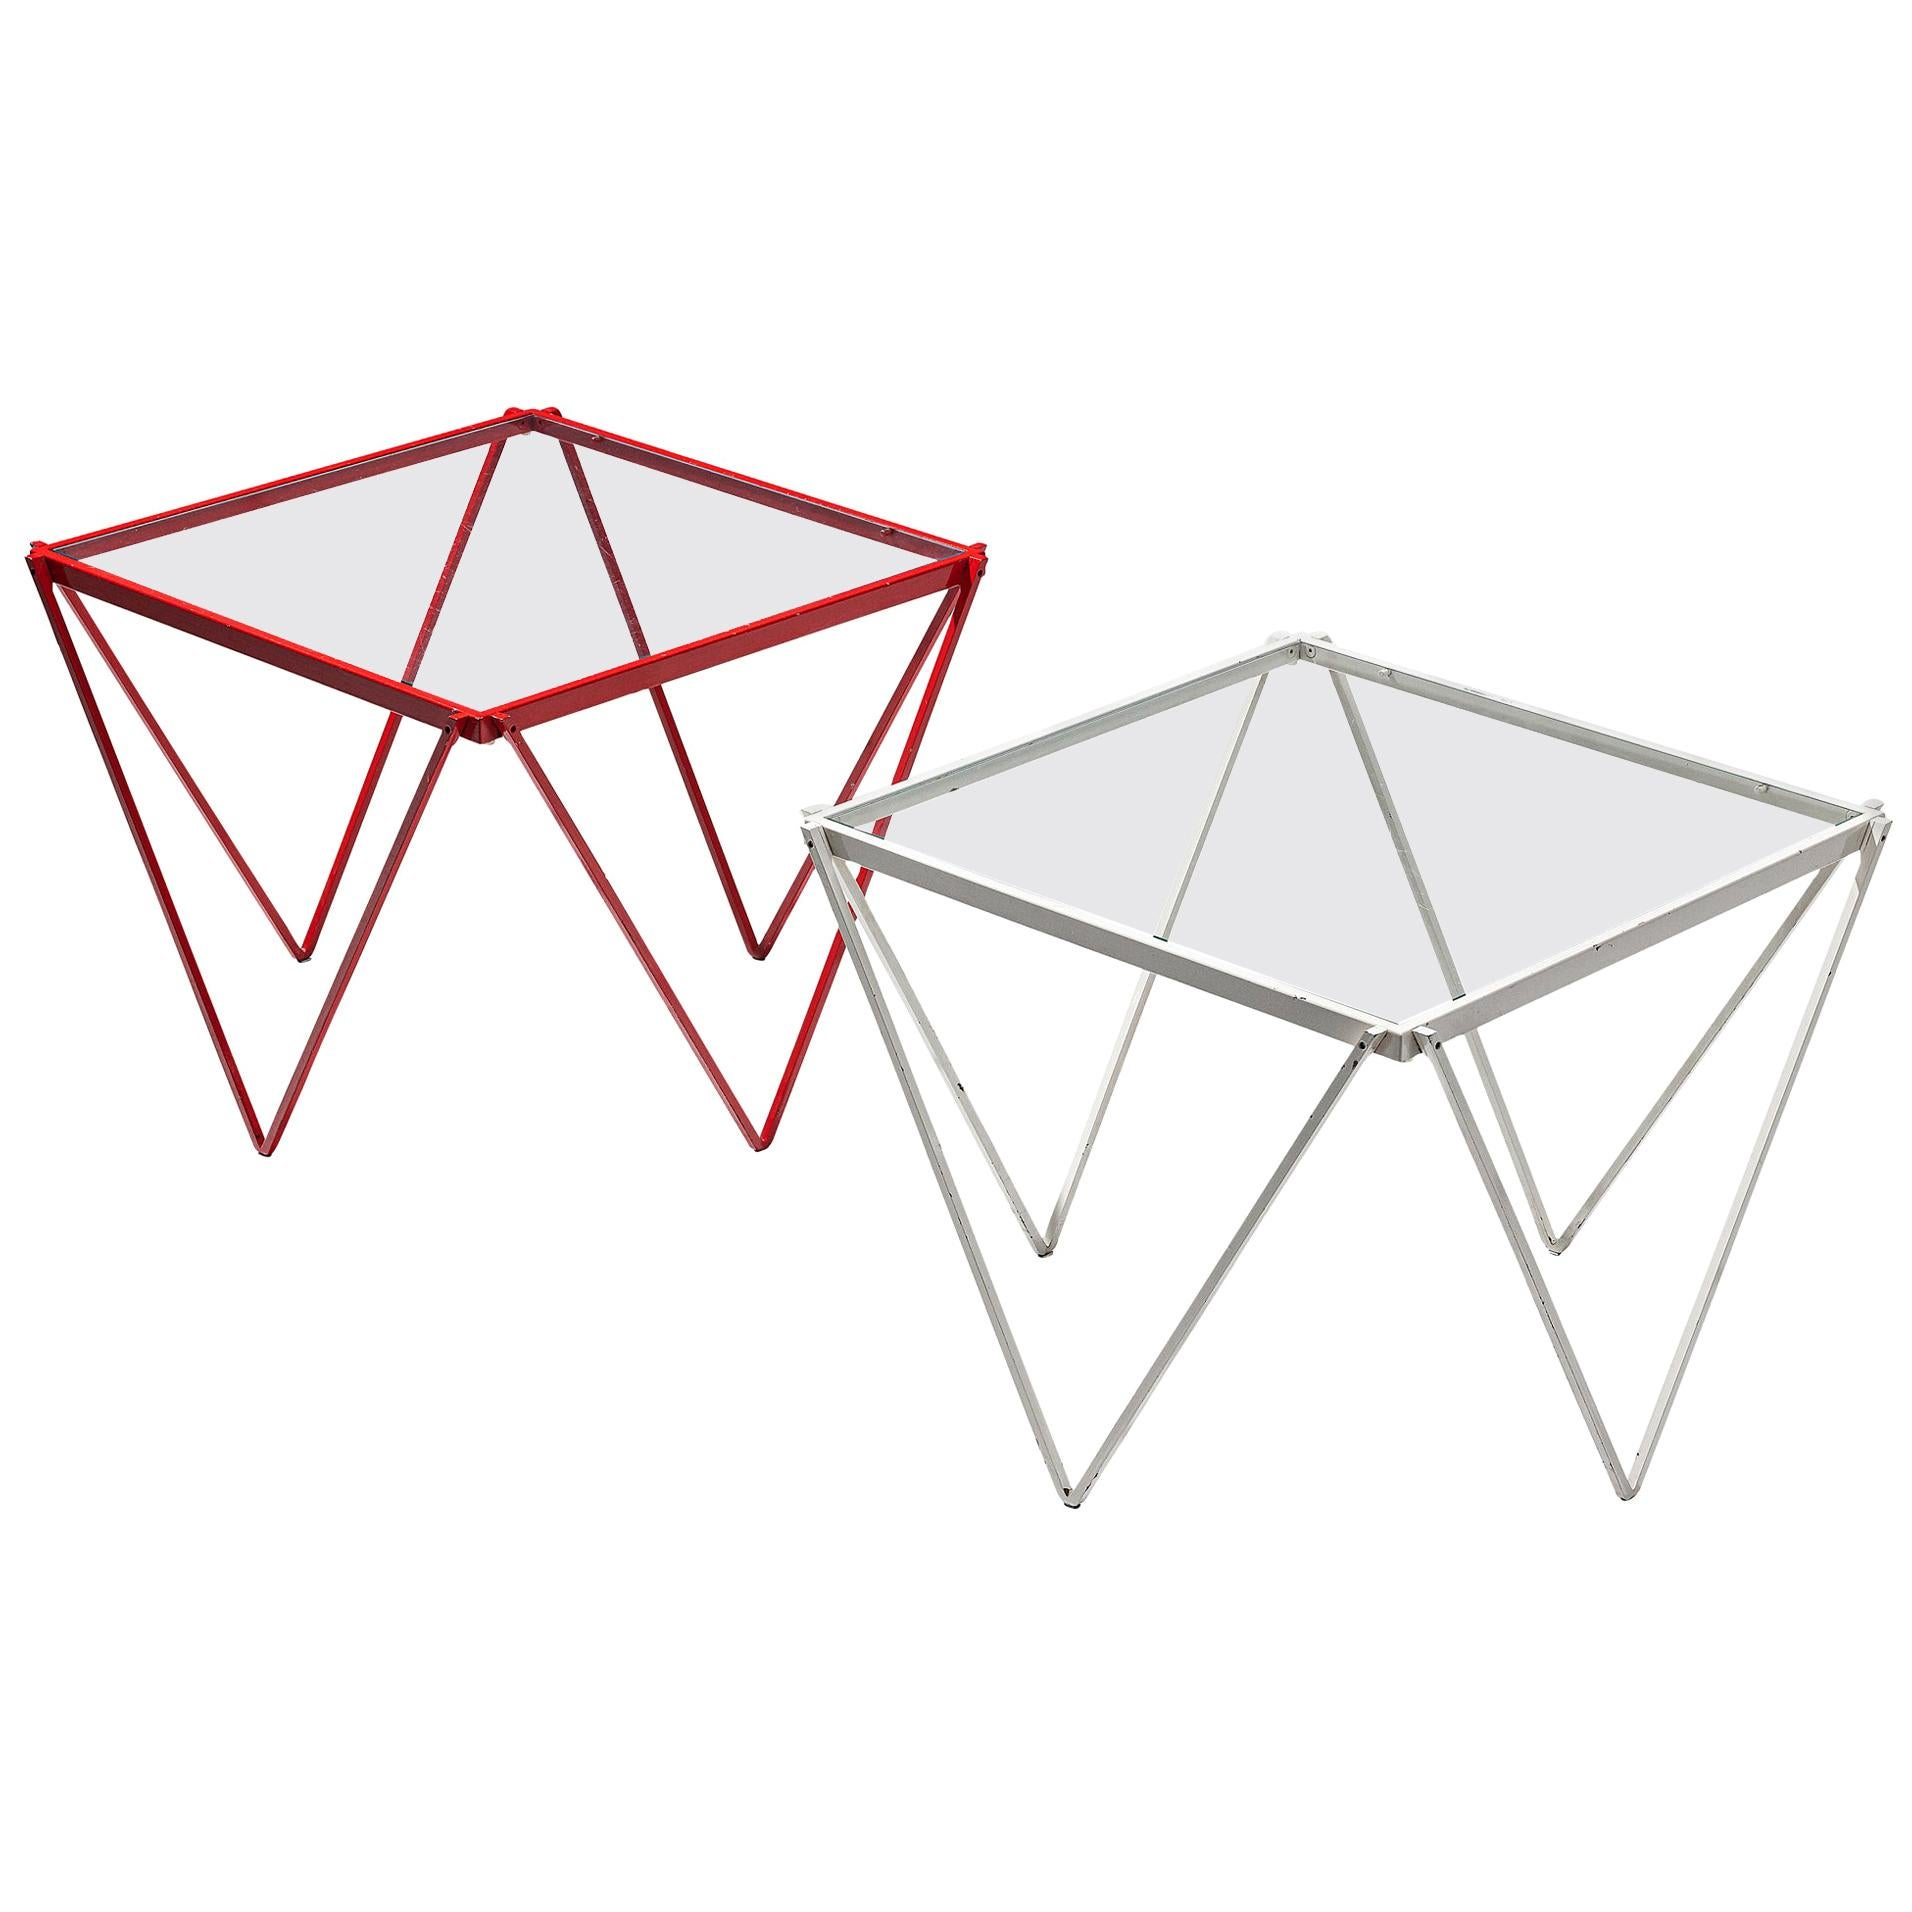 Pair of Side Tables in Red and White Metal with Glass